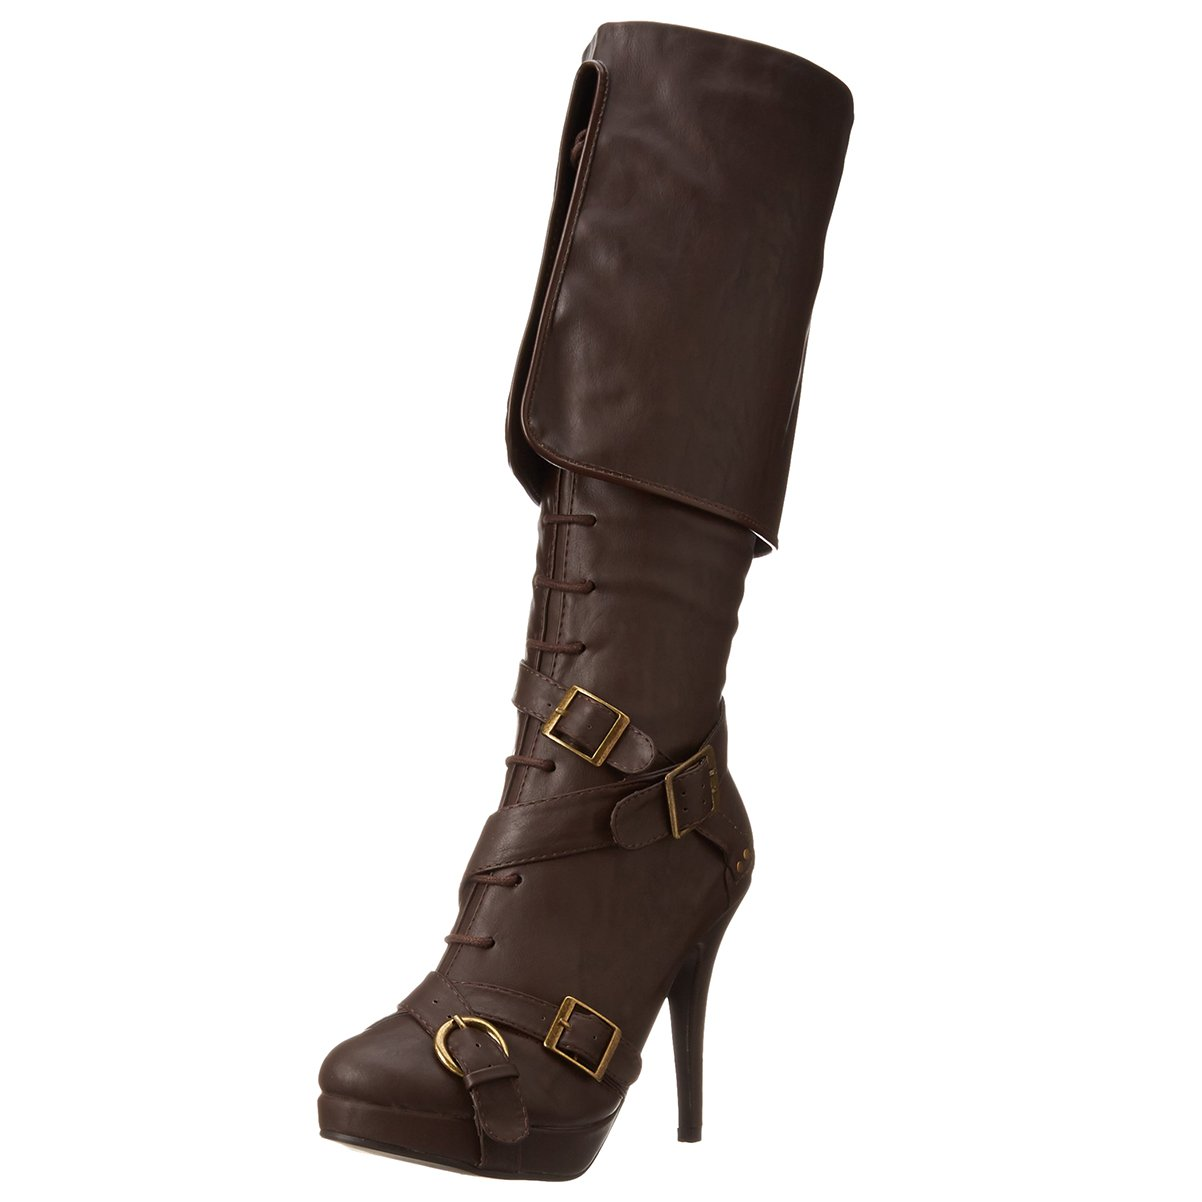 Women's Brown Knee-High Fold Over Strappy Pirate Boots - DeluxeAdultCostumes.com